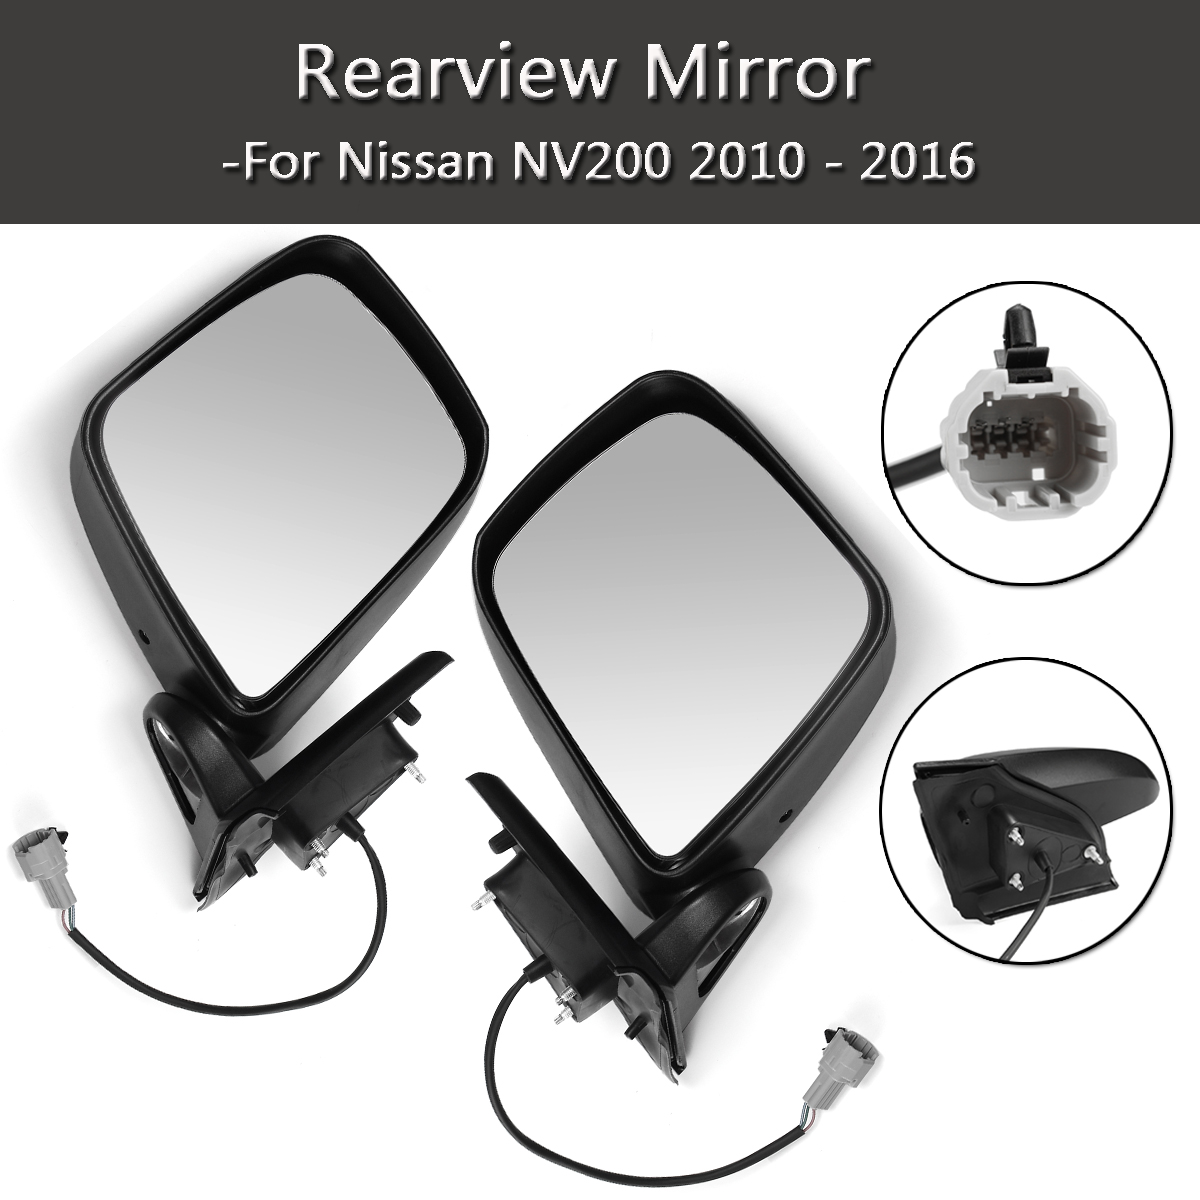 New Left/Right For Nissan NV200 2010-2016 Car Rearview Mirror Car Driver Side Rear View Mirror Passenger Side Electric Rear View daker challenger side mirror pajero sport rear mirror native back mirror